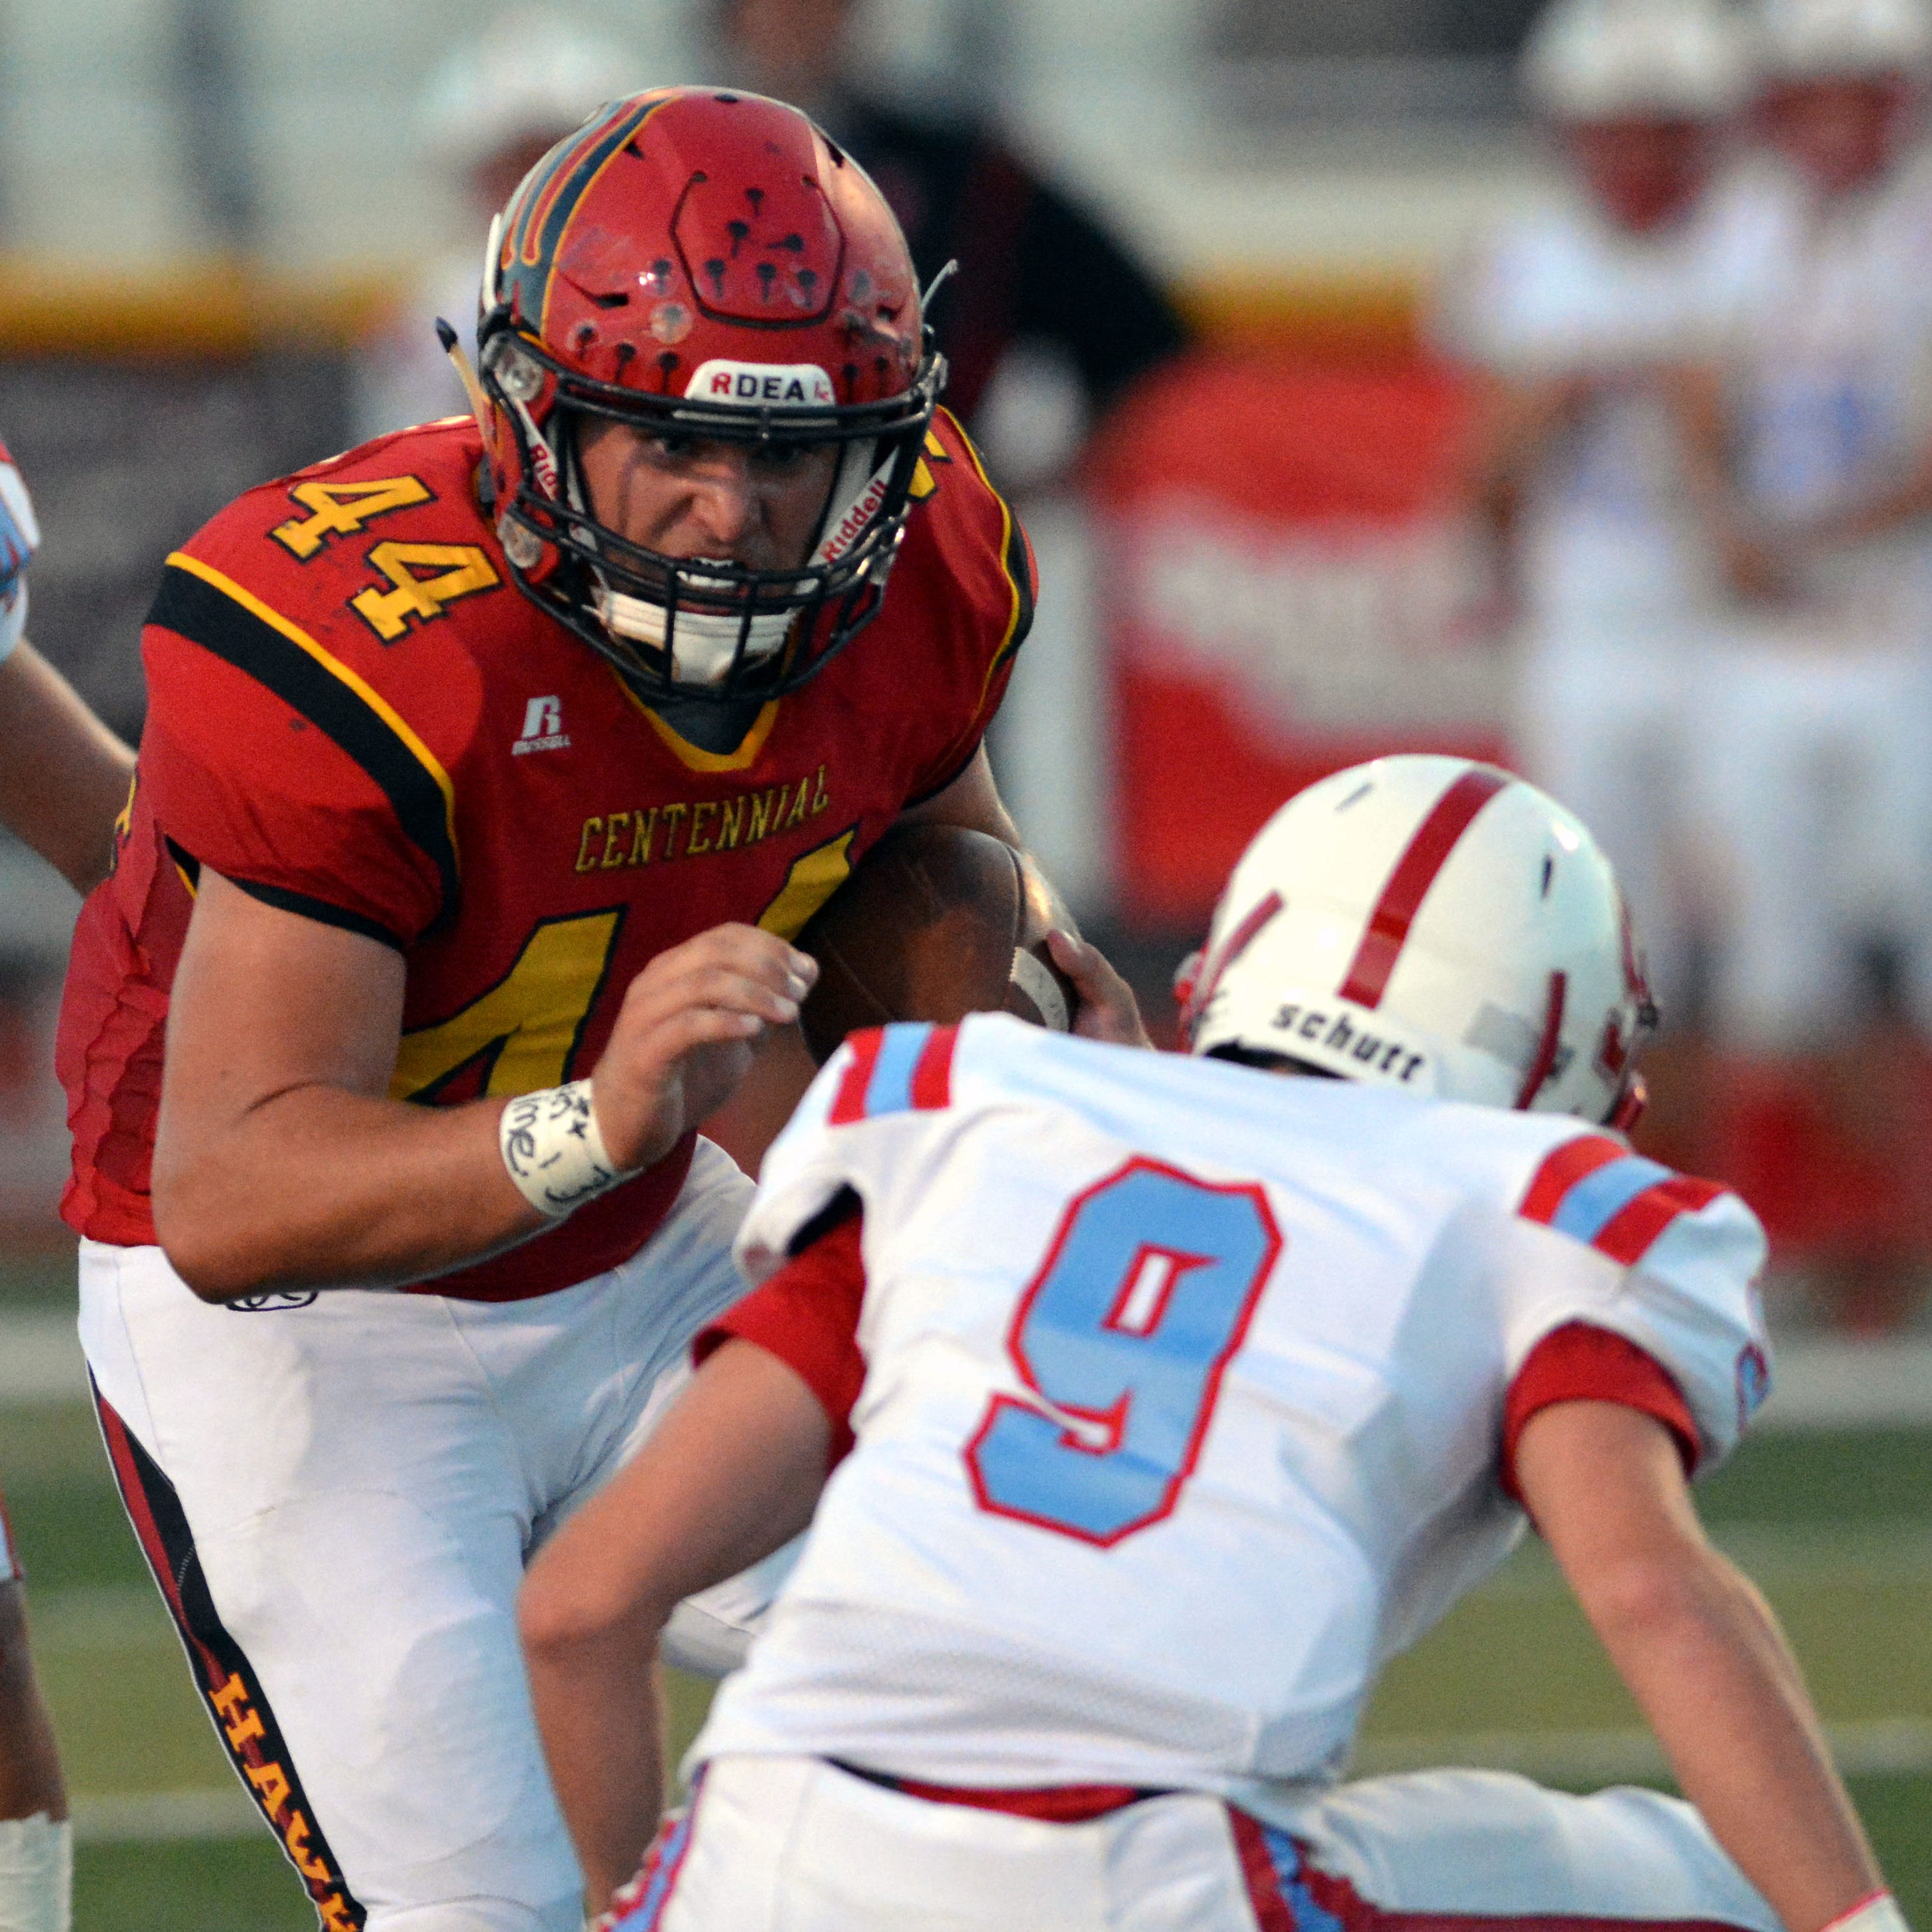 No. 4 Centennial improves to 4-0 with win over Sandia